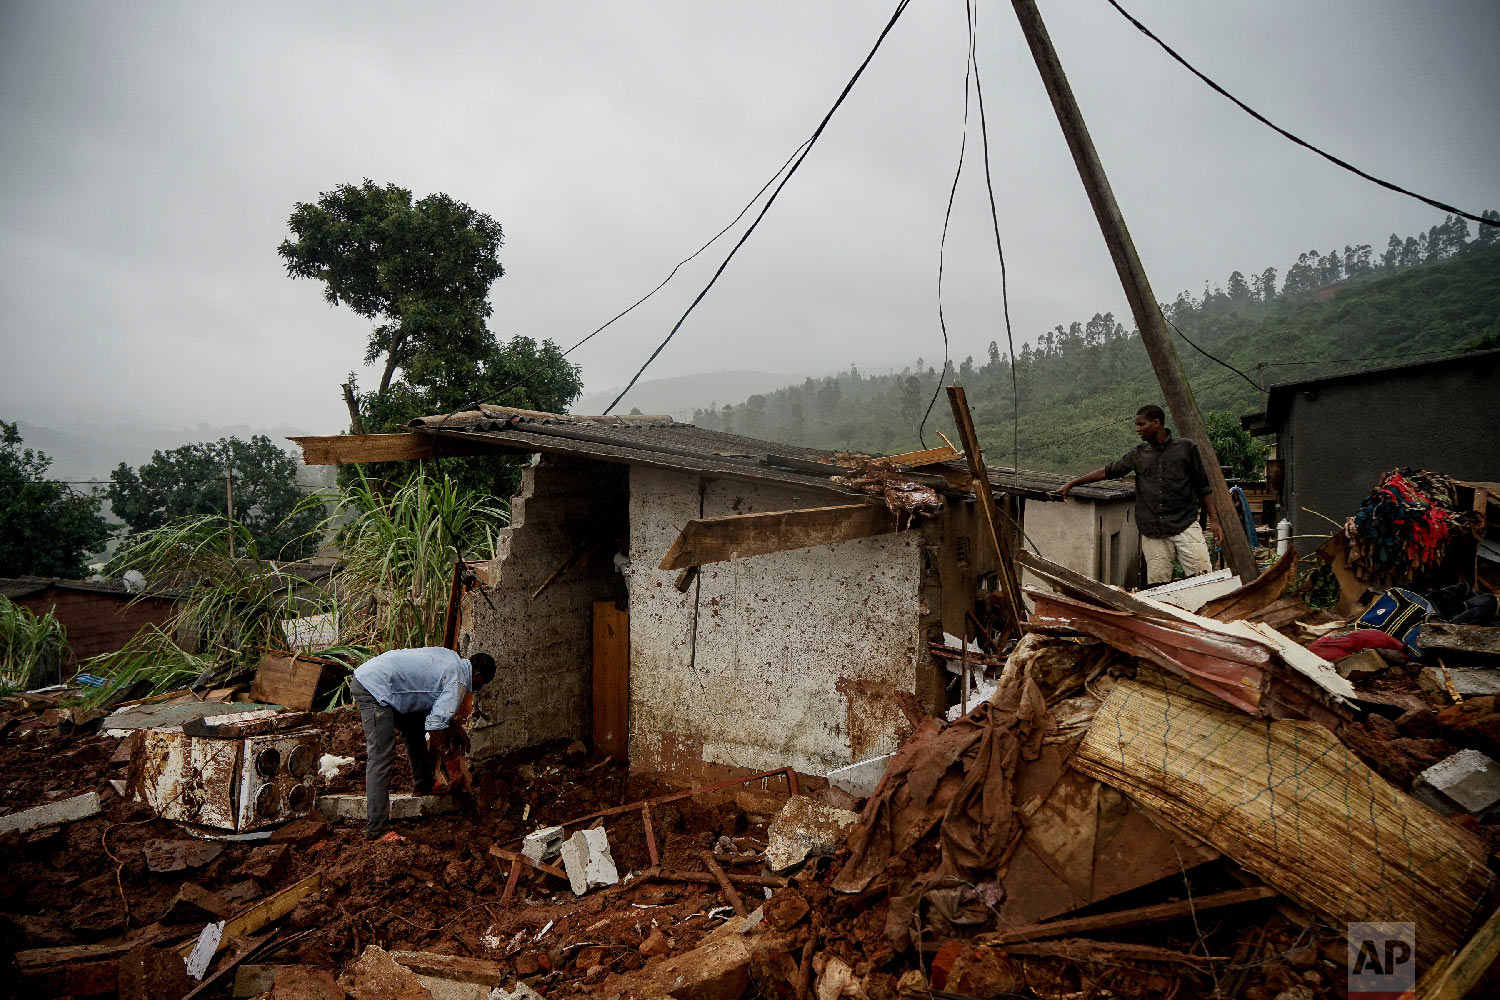 Men search to salvage what they can from a house which was damaged by Cyclone Idai in Chimanimani, Zimbabwe, Saturday, March 23, 2019 after Cyclone Idai caused floods that swept through Mozambique, Zimbabwe and Malawi. (AP Photo/KB Mpofu)